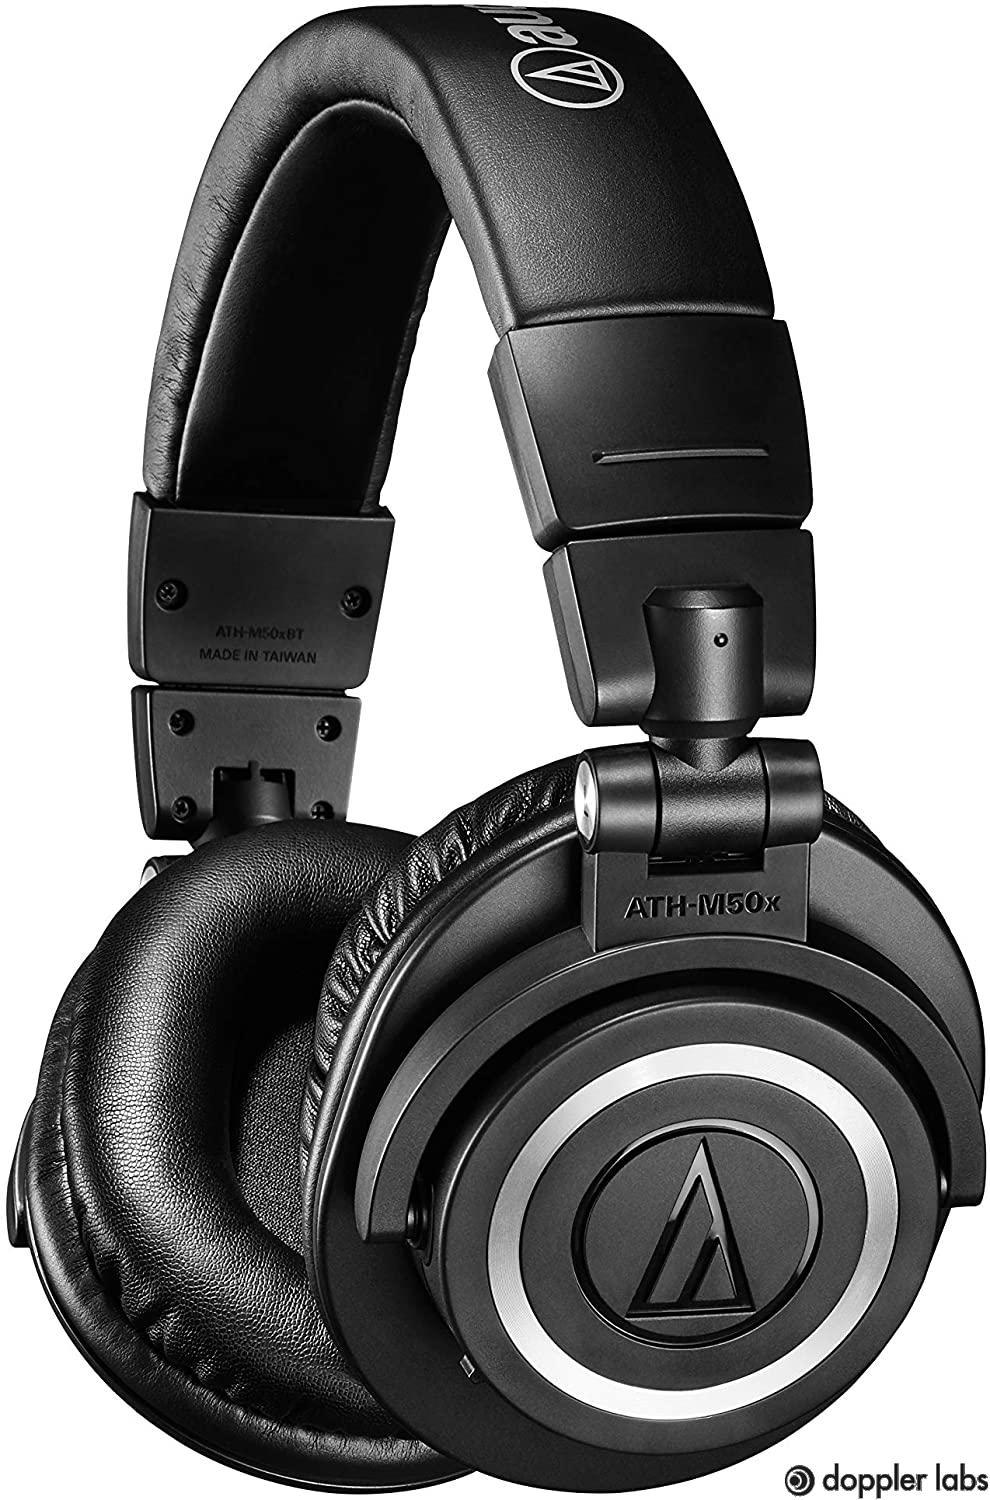 The Audio-Technica ATH-M50X BT Over-Ear Headphones have incredible audio monitoring.